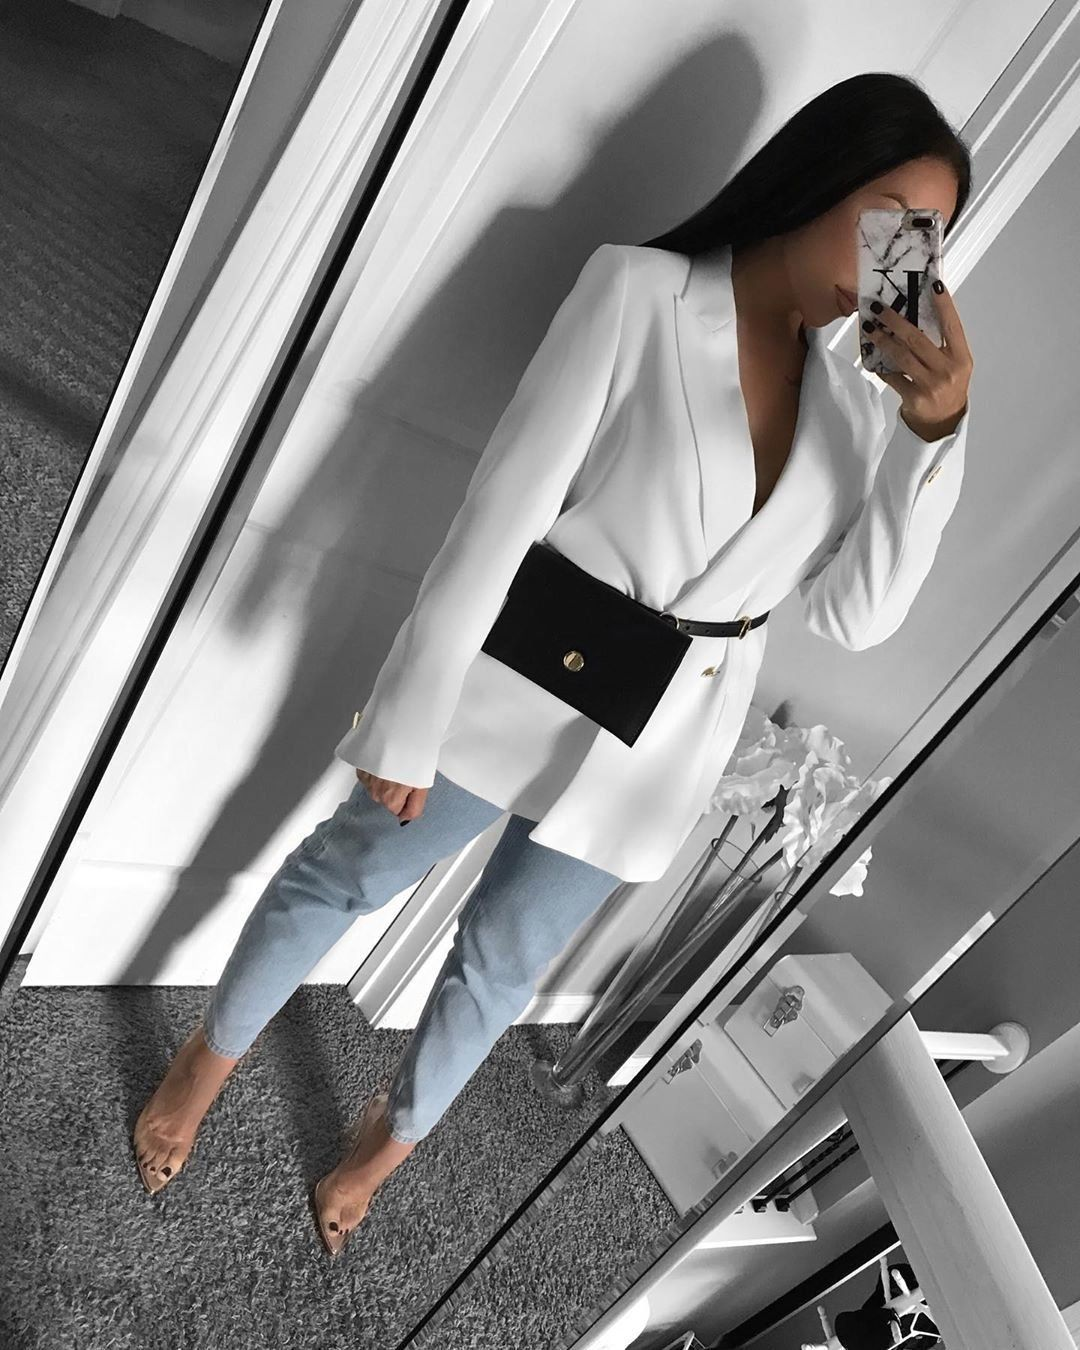 """Karolina Cruz on Instagram: """"Heels @luxetokill 🖤 . . . . . ootd~ SHOP MY LOOK at @21buttons_us click link in bio 🖤 . . . . . . . . . . .  #outfitinspiration #mylook…"""" 